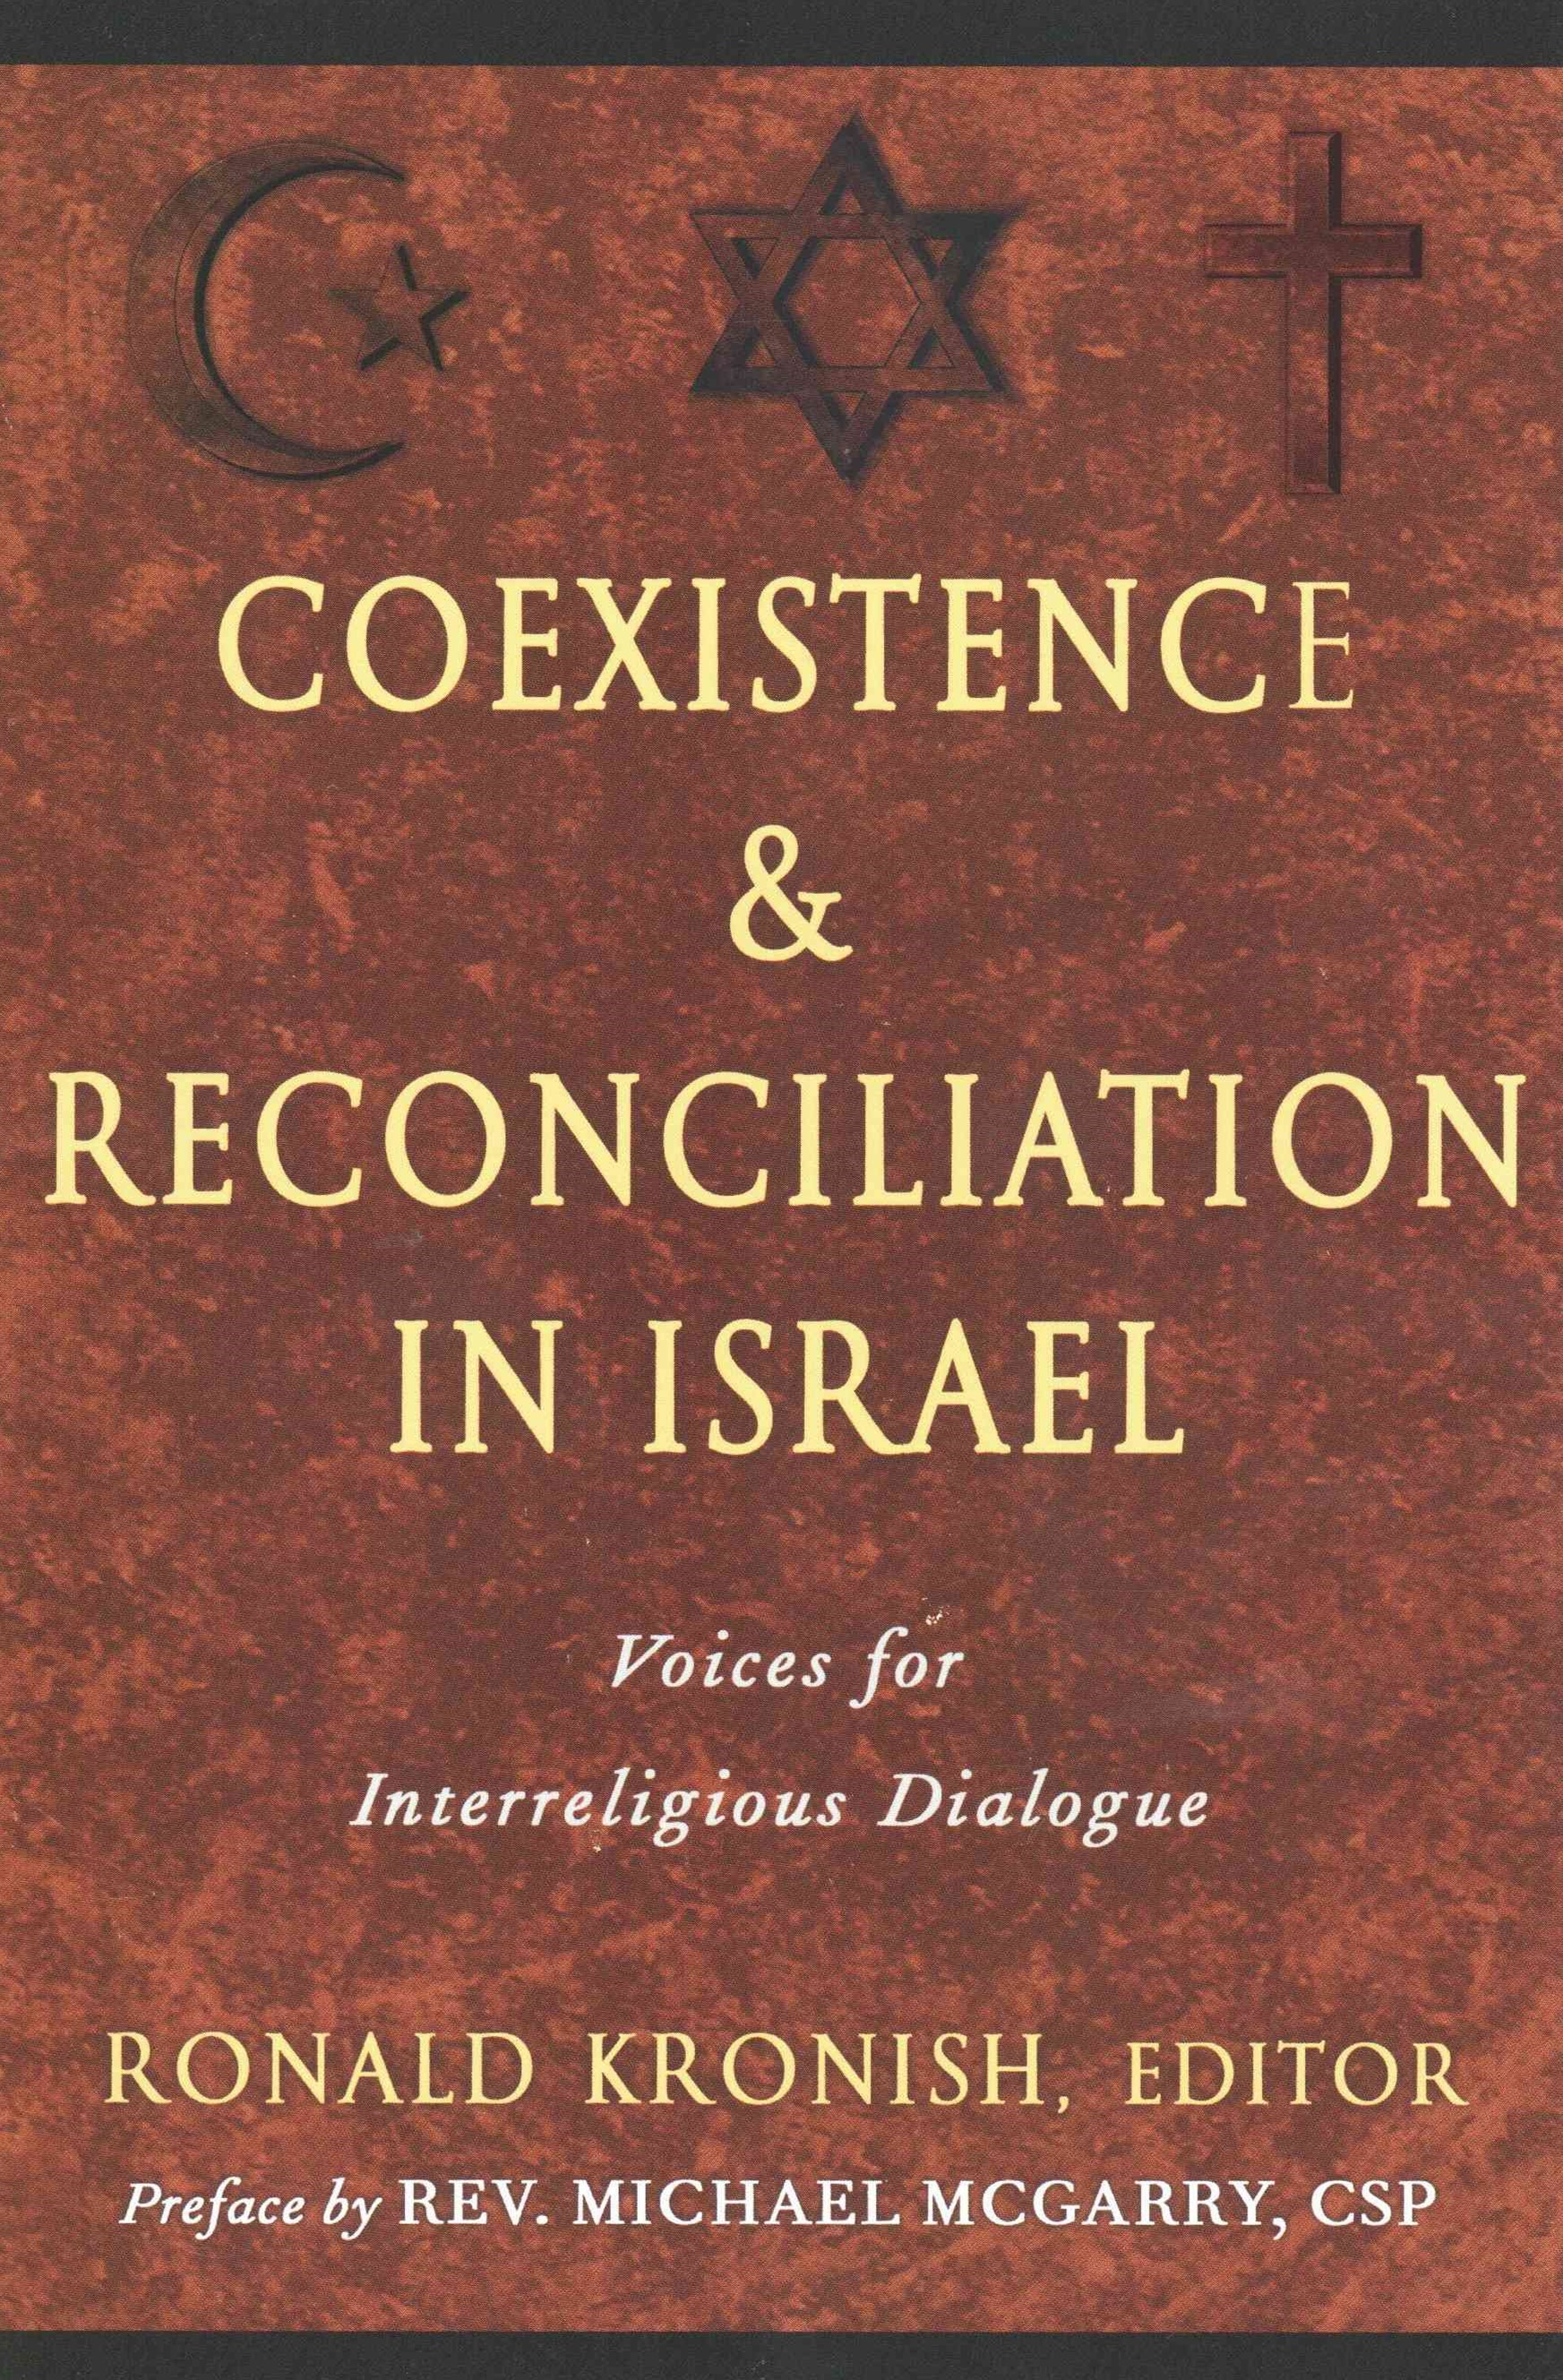 Coexistence and Reconciliation in Israel